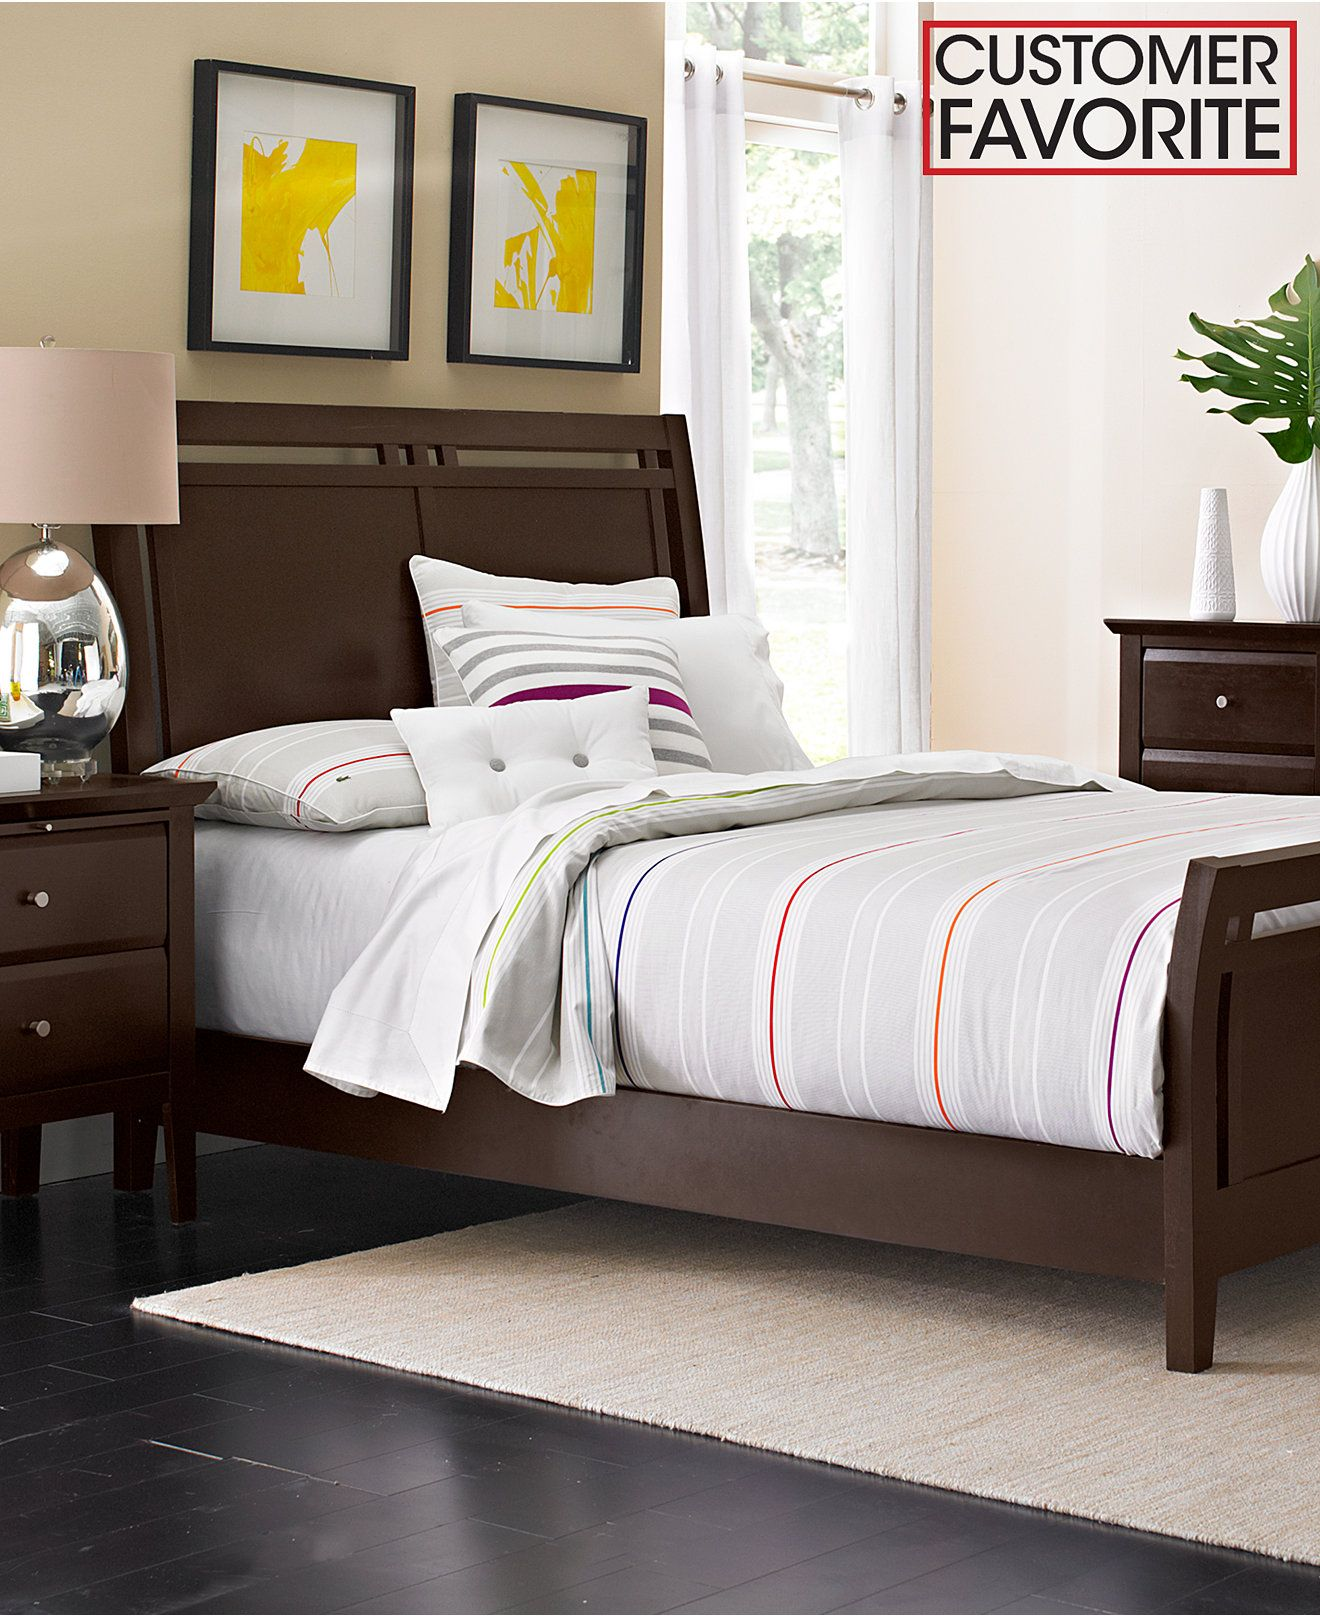 Edgewater Bedroom Furniture Sets & Pieces Furniture Macy s